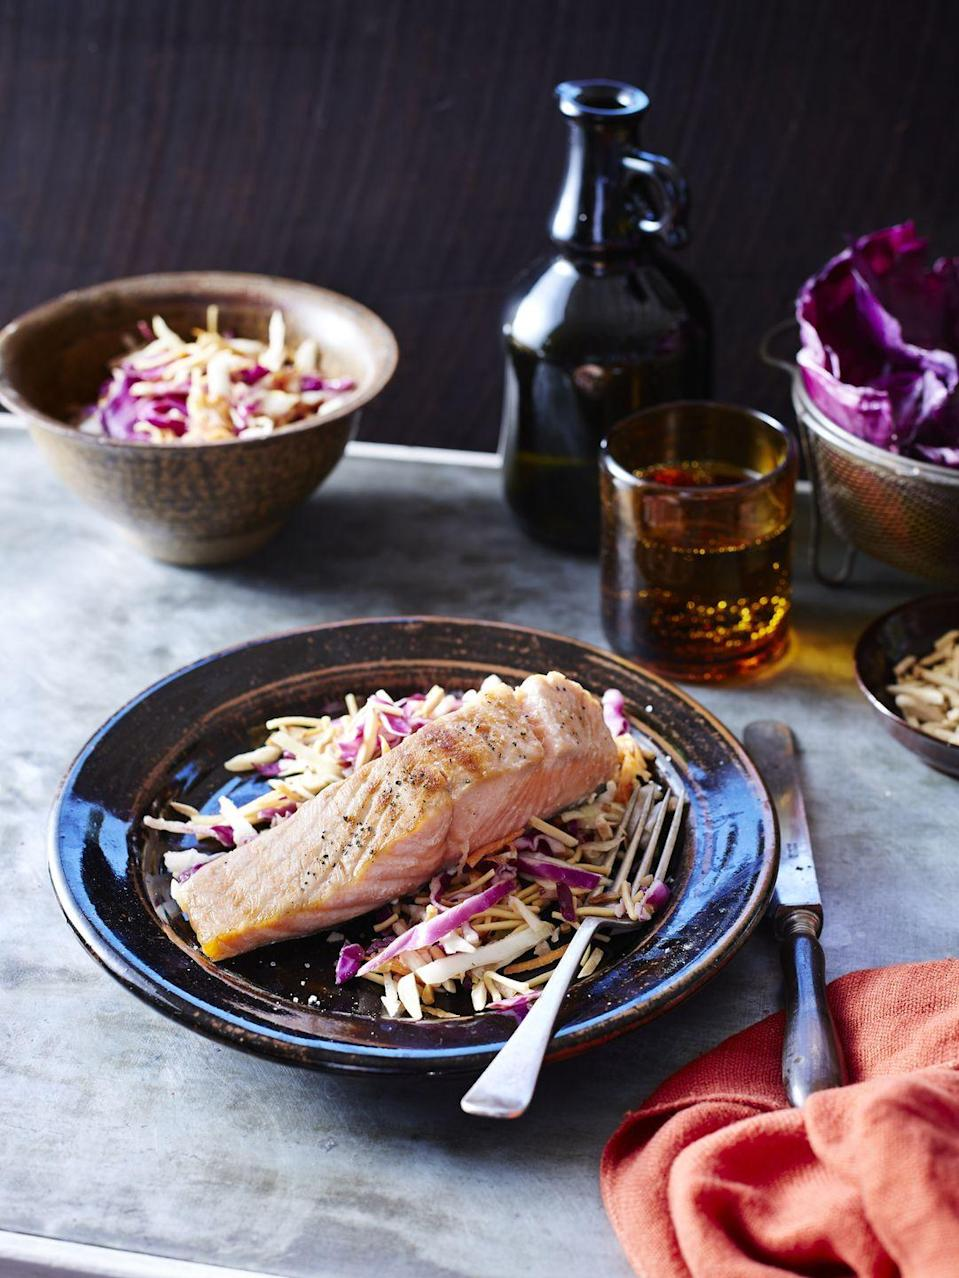 "<p>Serve 4 ounces <a href=""https://www.goodhousekeeping.com/food-recipes/healthy/g817/healthy-salmon-dinners/"" rel=""nofollow noopener"" target=""_blank"" data-ylk=""slk:poached salmon"" class=""link rapid-noclick-resp"">poached salmon</a> with a slaw made by tossing 1 1/4 cups coleslaw mix and 2 sliced scallions with 1 tablespoon of rice vinegar and 1 1/2 teaspoons olive oil. Add spices, herbs, and seasoning as desired. Pair with 3/4 cup of a 100% whole grain (like <a href=""https://www.goodhousekeeping.com/health/diet-nutrition/a48055/quinoa-nutrition/"" rel=""nofollow noopener"" target=""_blank"" data-ylk=""slk:quinoa"" class=""link rapid-noclick-resp"">quinoa</a>) and an apple on the side.</p>"